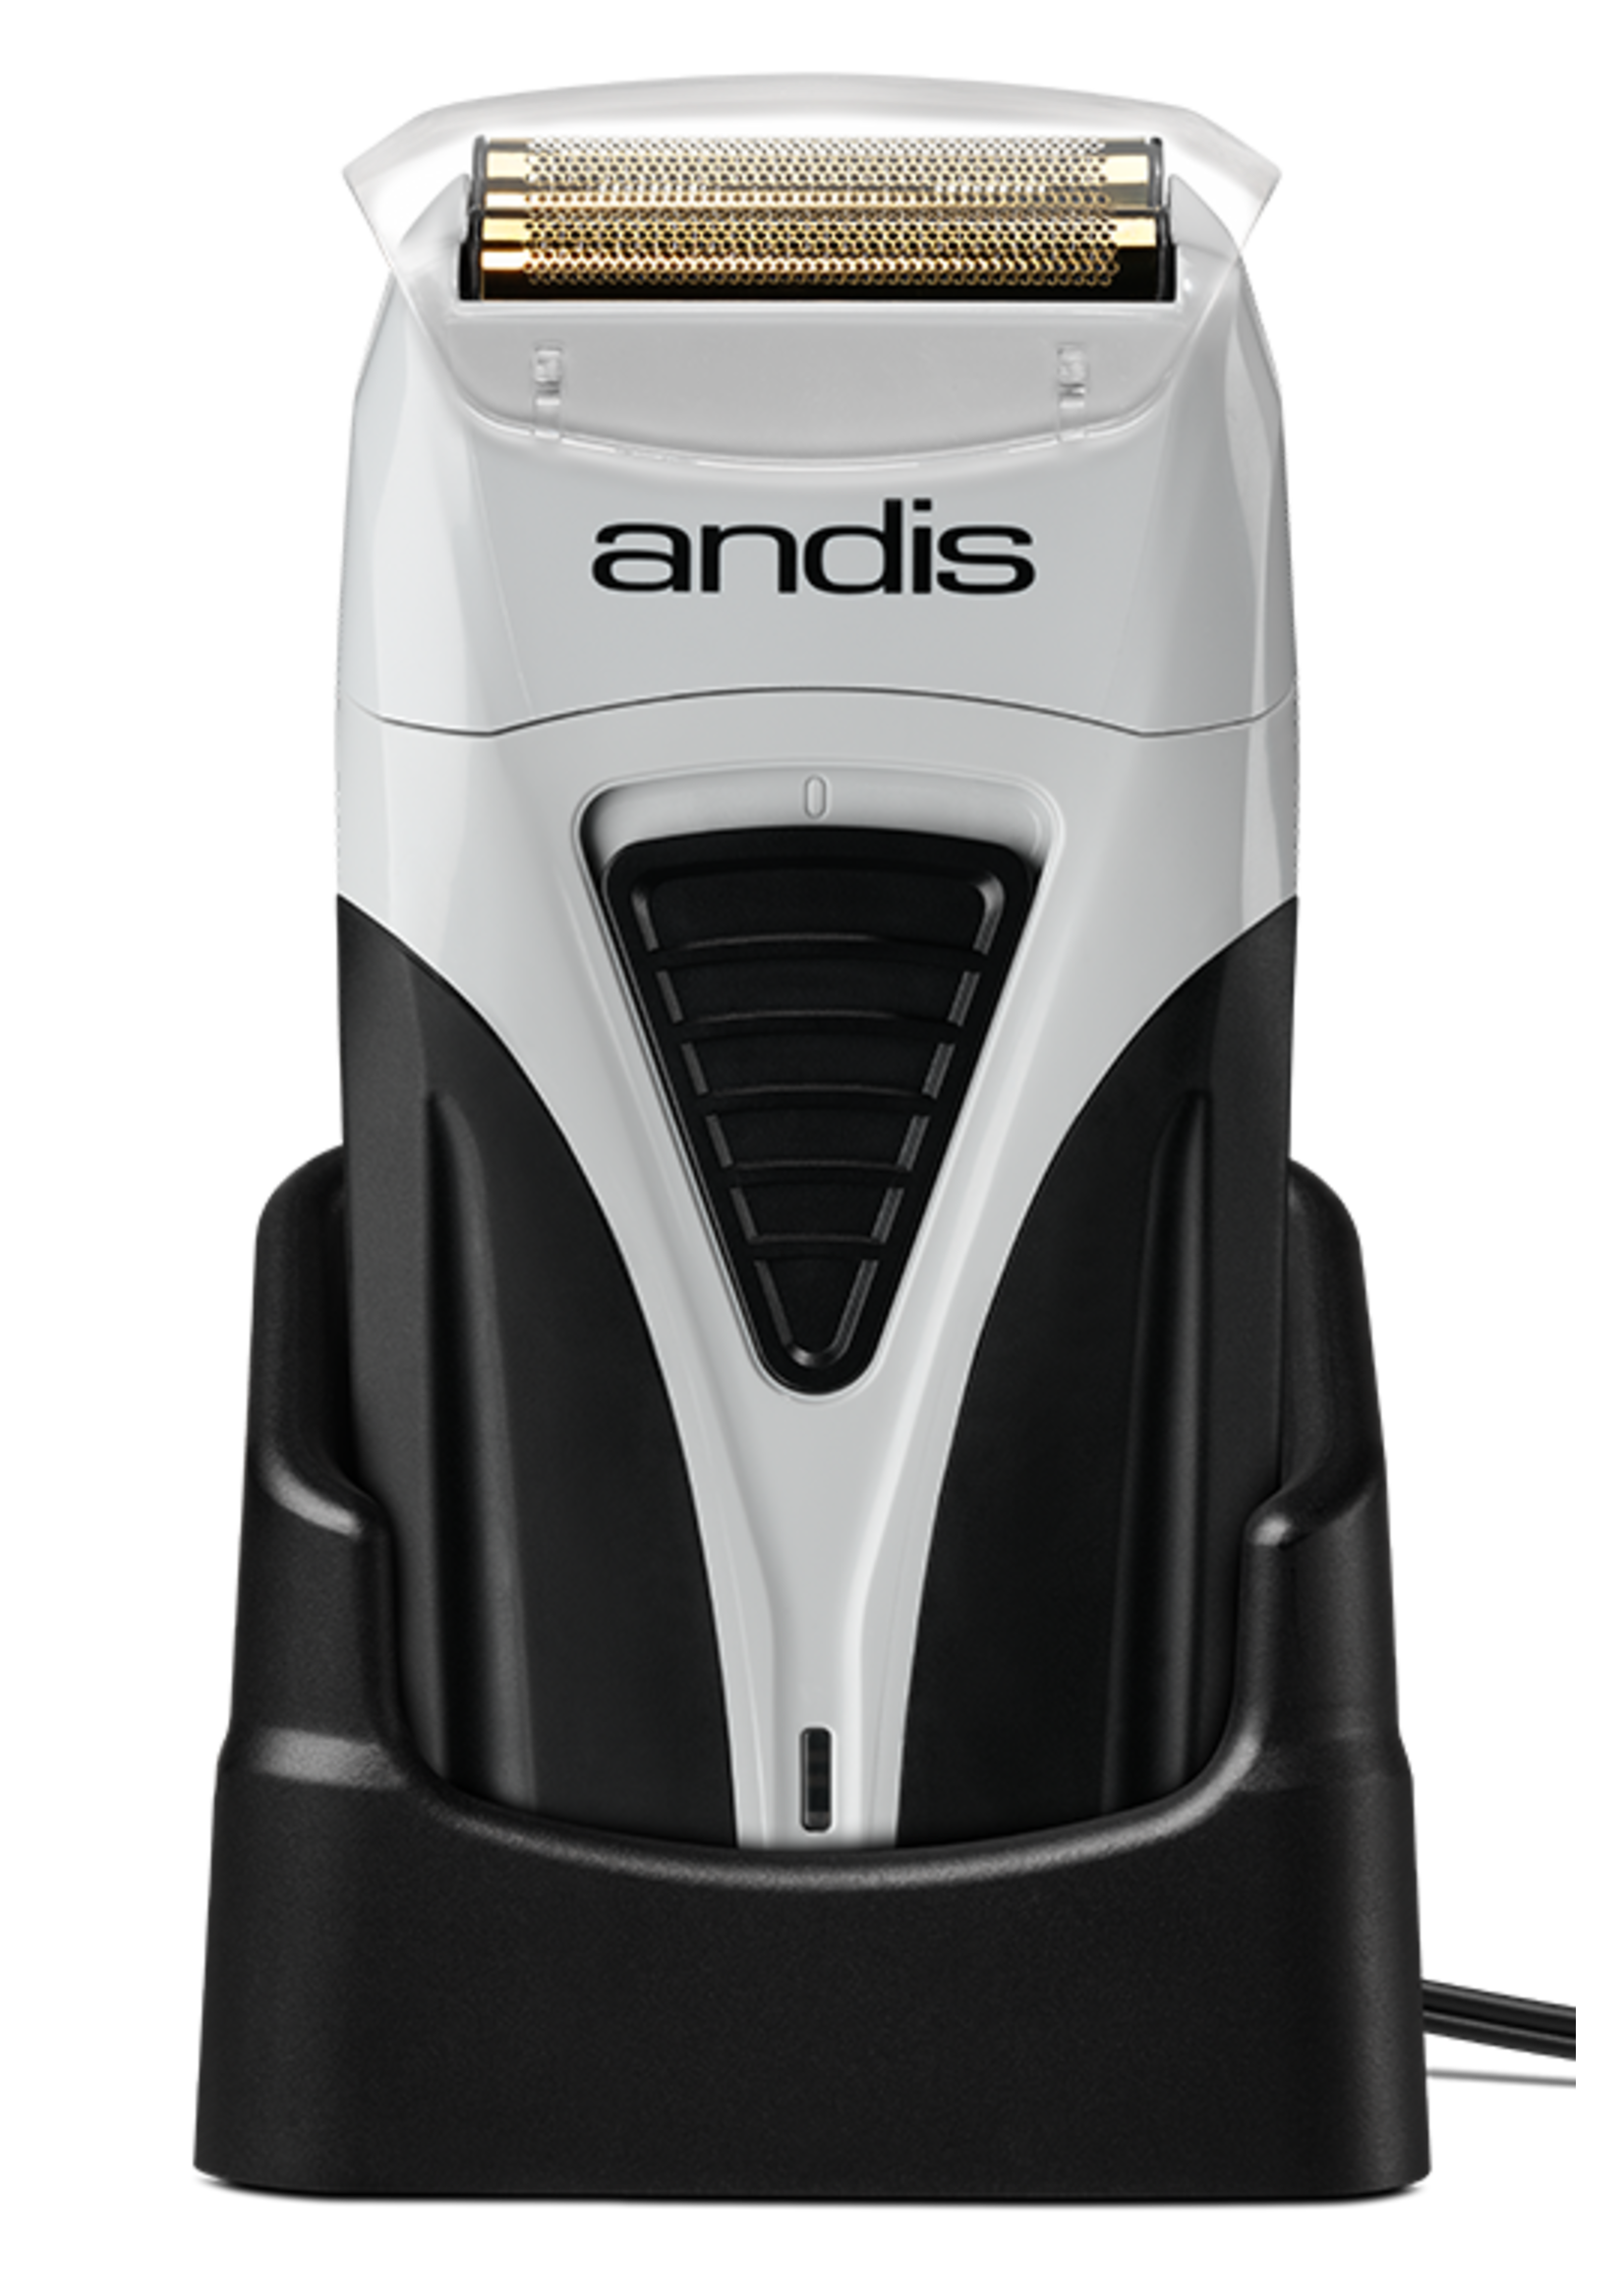 Andis Andis ProFoil Lithium Plus Shaver with stand (TS2) Black